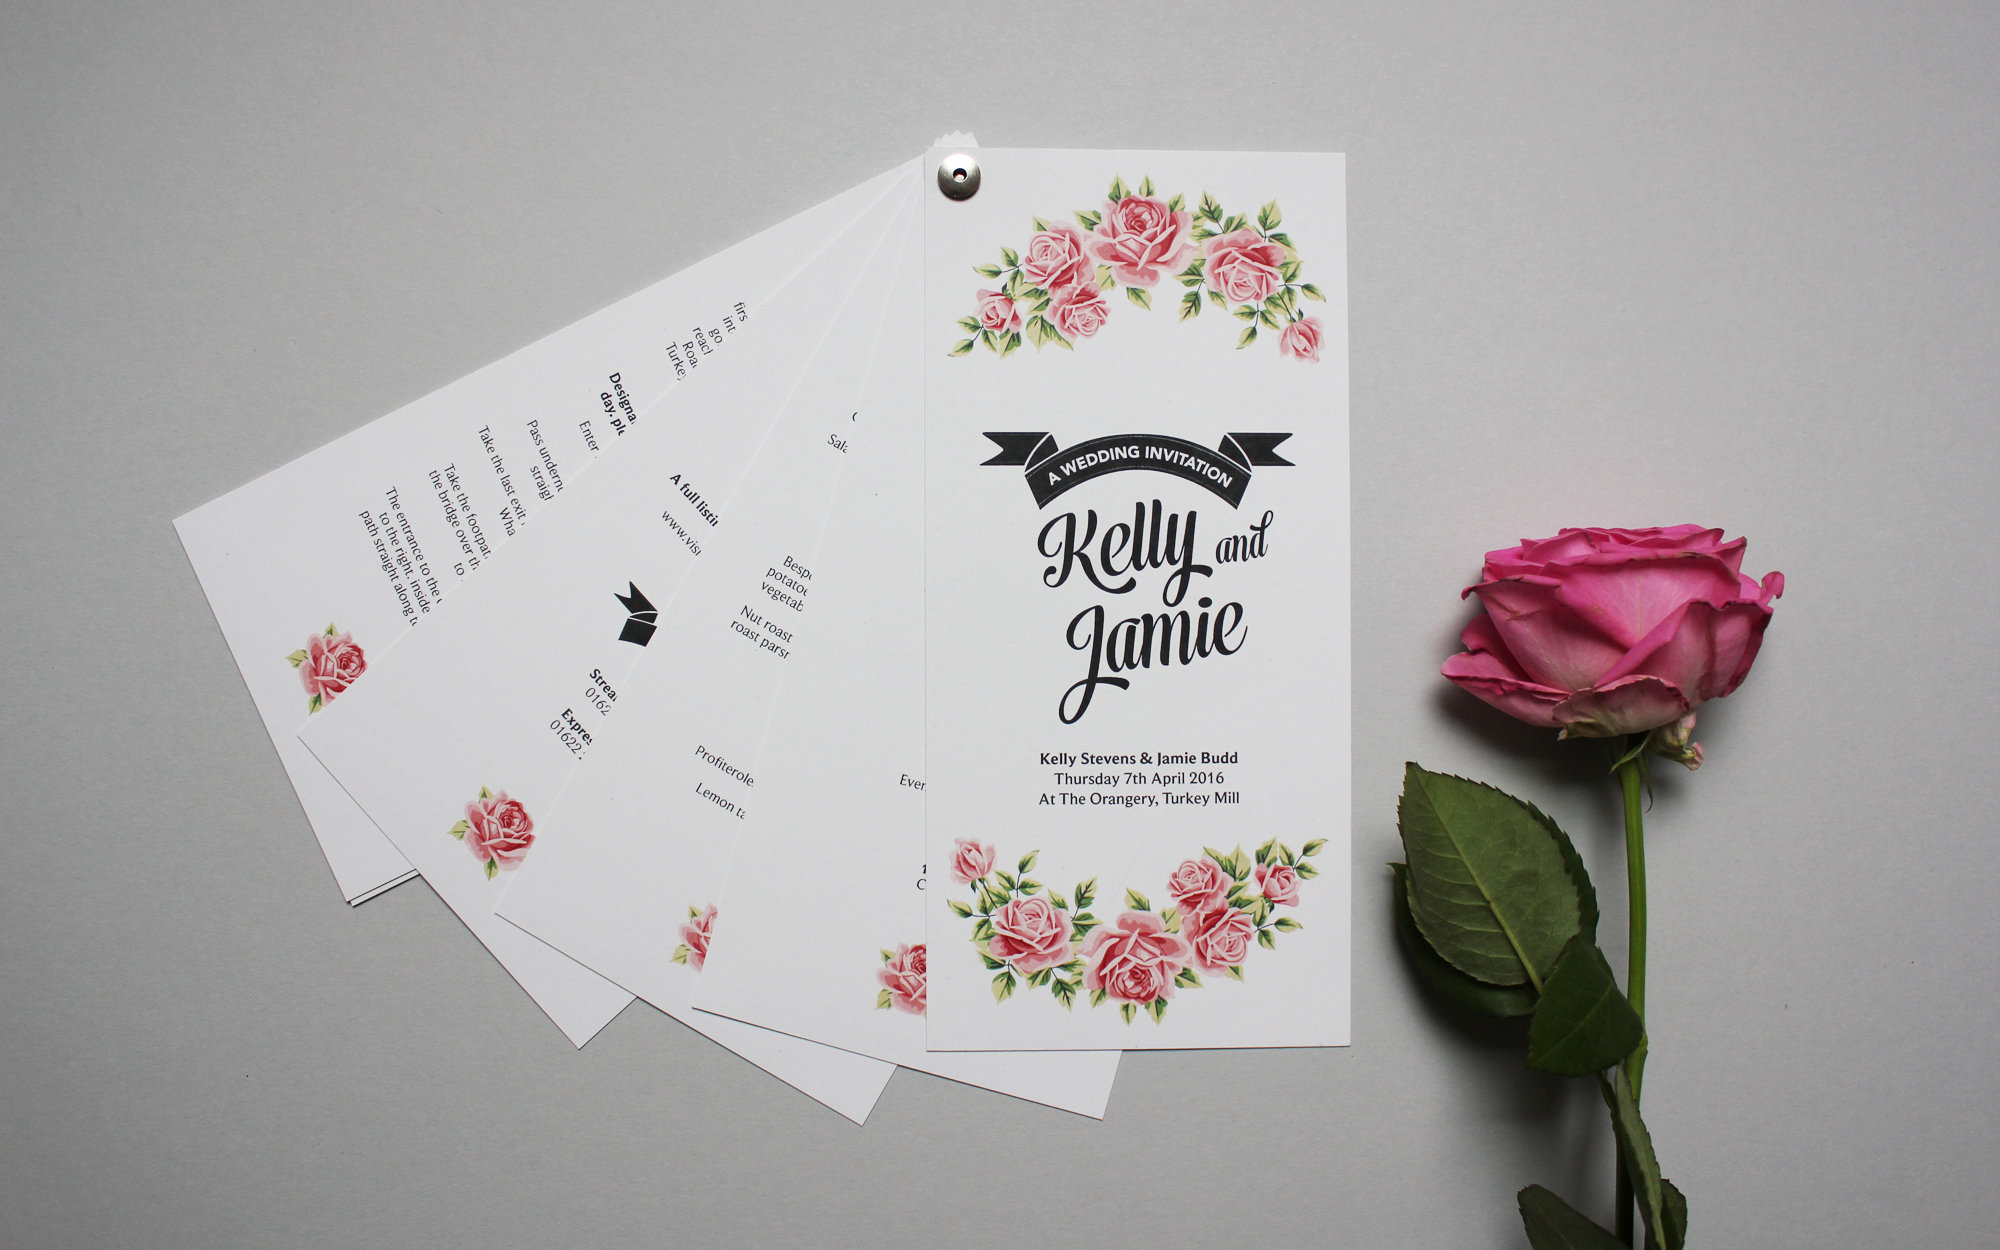 matthew_pomorski_graphic_designer_print_wedding_stationary_2